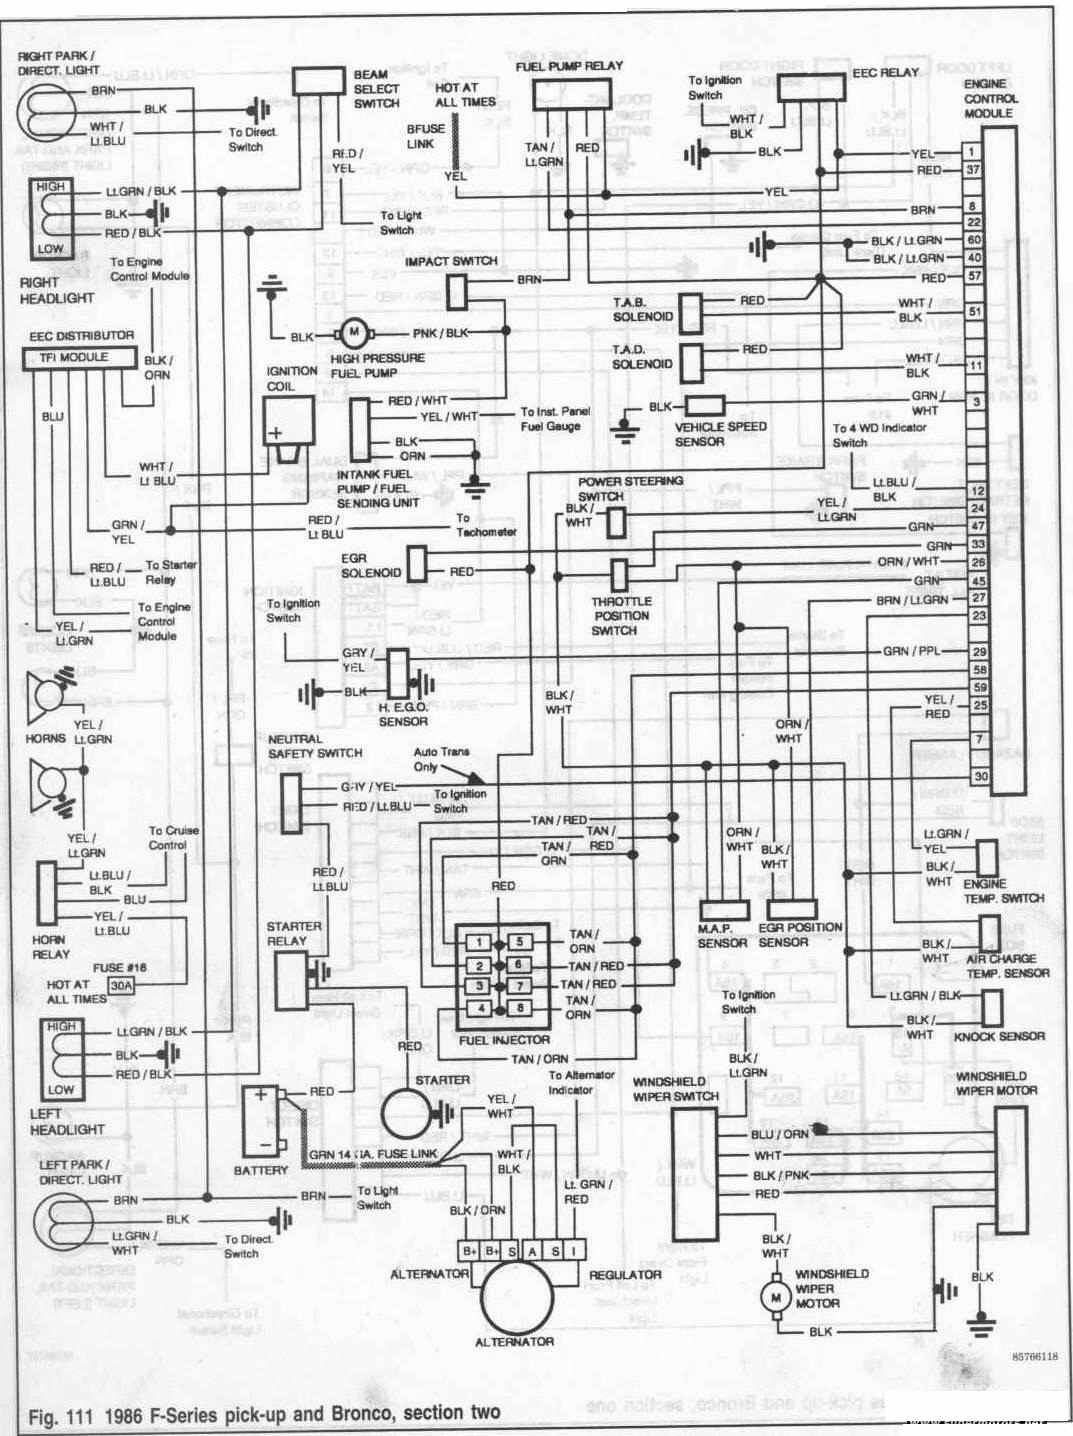 88 Ford Ranger Wiring Diagram | Wiring Diagram  Ford Pickup Wiring Diagram on 94 ford f-150 wiring diagram, 94 ford pickup parts, 71 chevy pickup wiring diagram, 79 chevy pickup wiring diagram, 72 chevy pickup wiring diagram, 85 chevy pickup wiring diagram, 74 ford pickup wiring diagram, 94 ford bronco wiring diagram, 91 toyota pickup wiring diagram, 94 ford tempo wiring diagram, 1990 ford pickup wiring diagram, 94 nissan pickup wiring diagram,